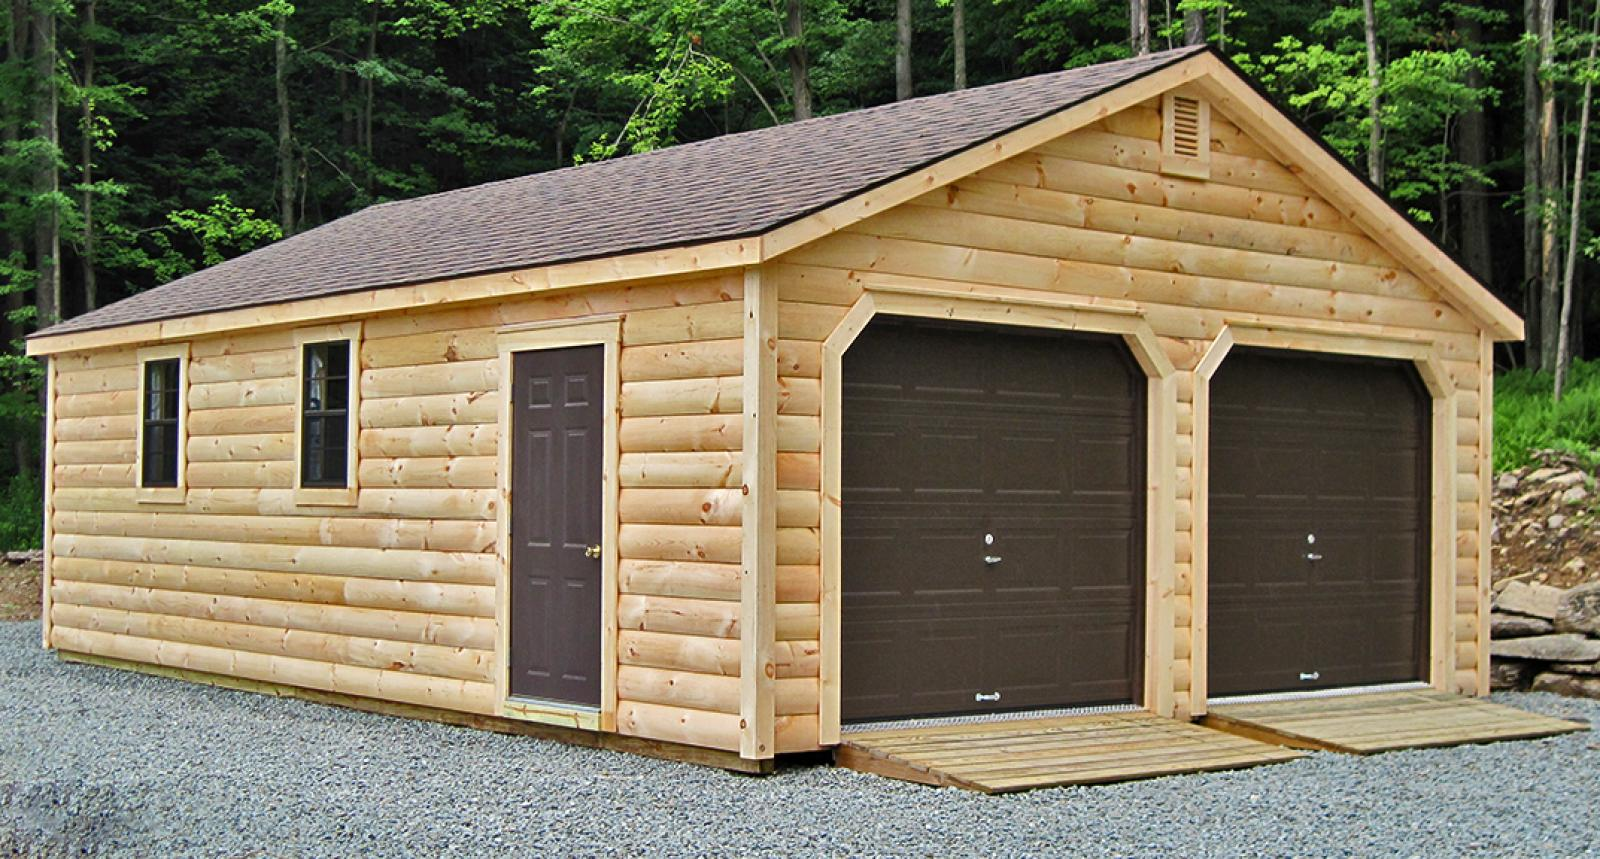 How much to build a garage on side of the house uk for Garage designs canada